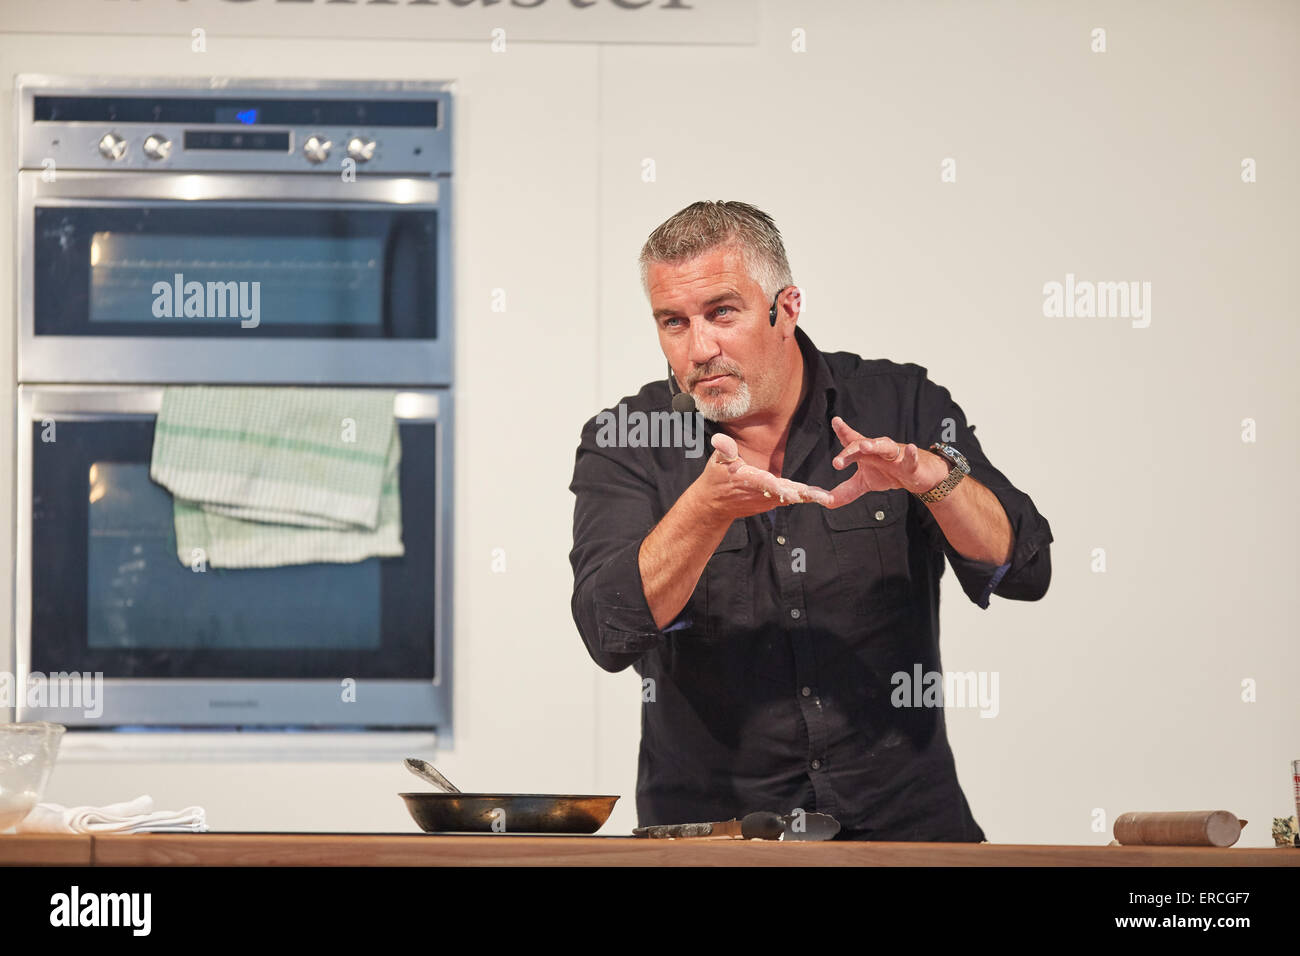 TV baker Paul Hollywood at Salford Quays for the Lowry Outlet Food Festival.   Celebrity famous famed public figure - Stock Image